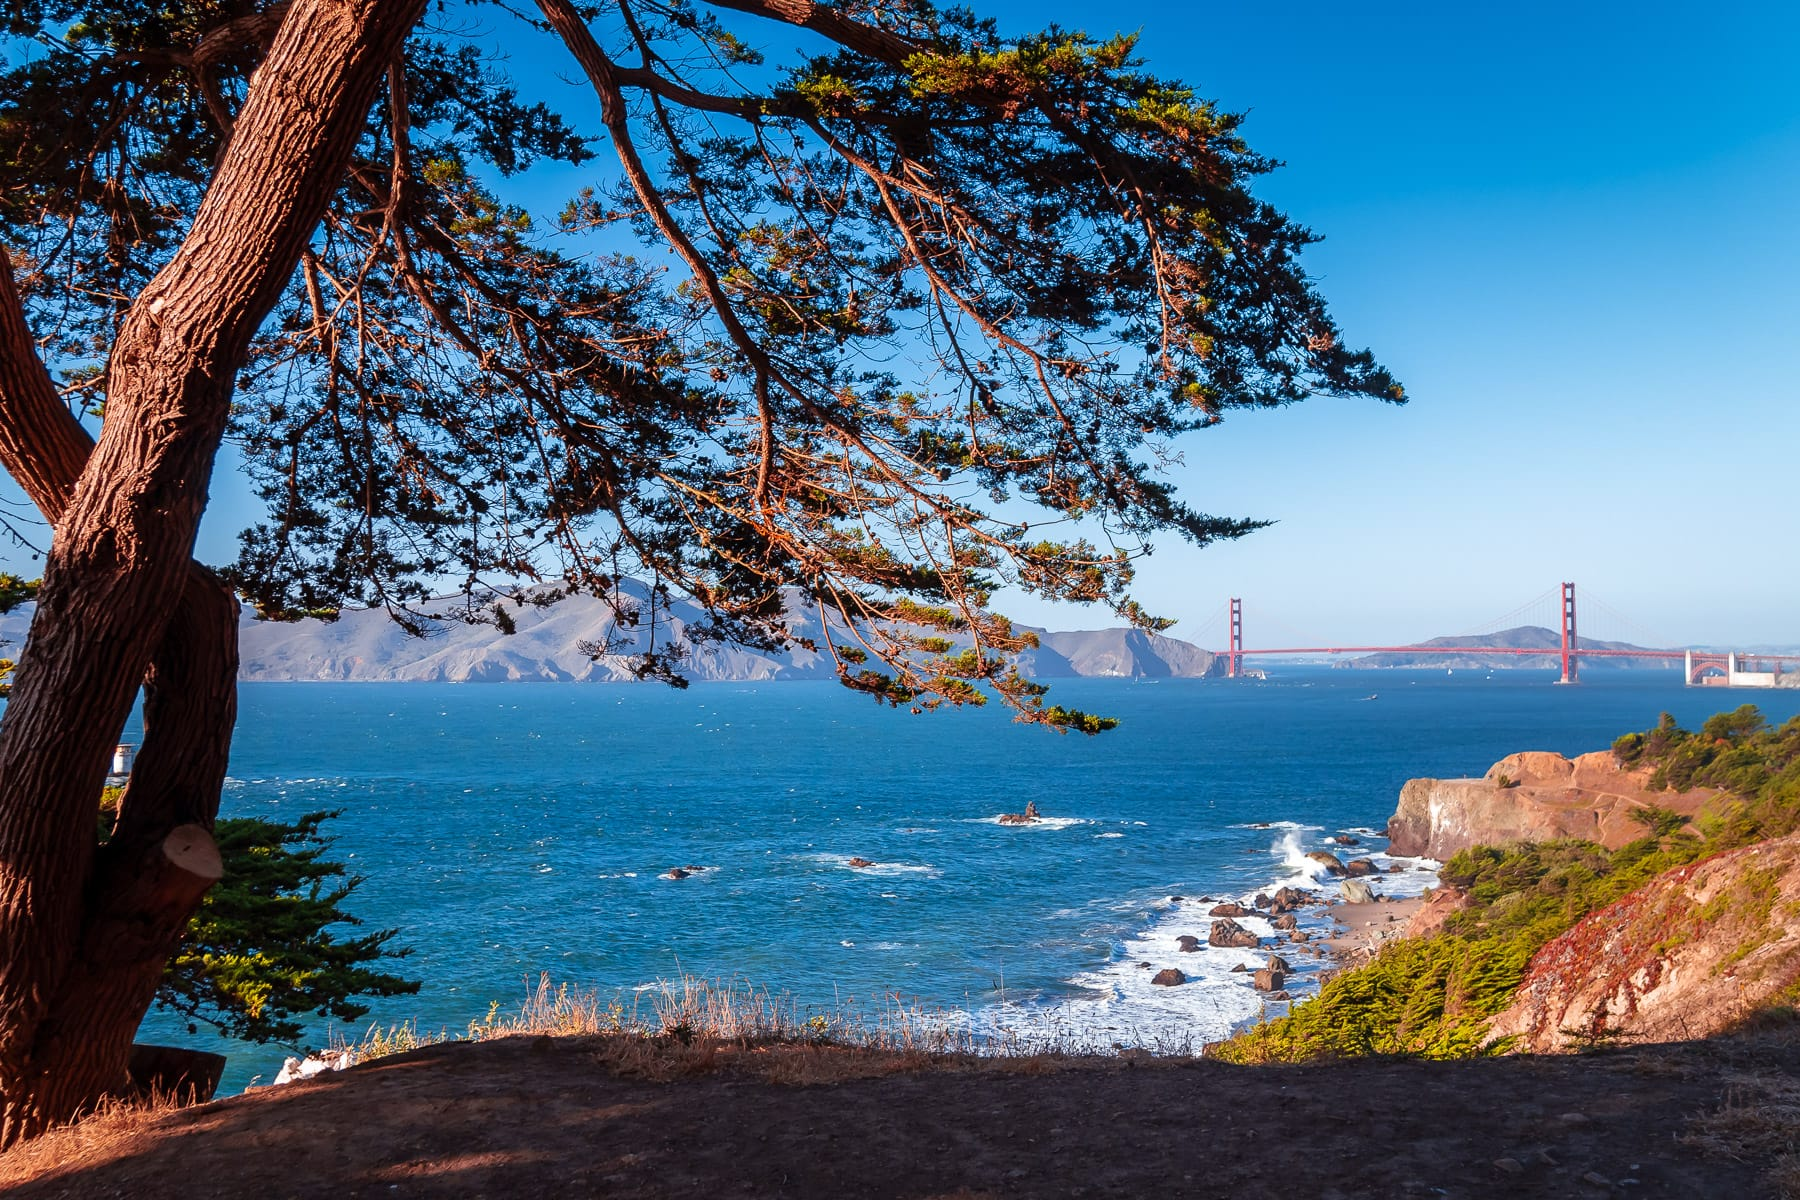 A tree at Lands End frames San Francisco's iconic Golden Gate Bridge.